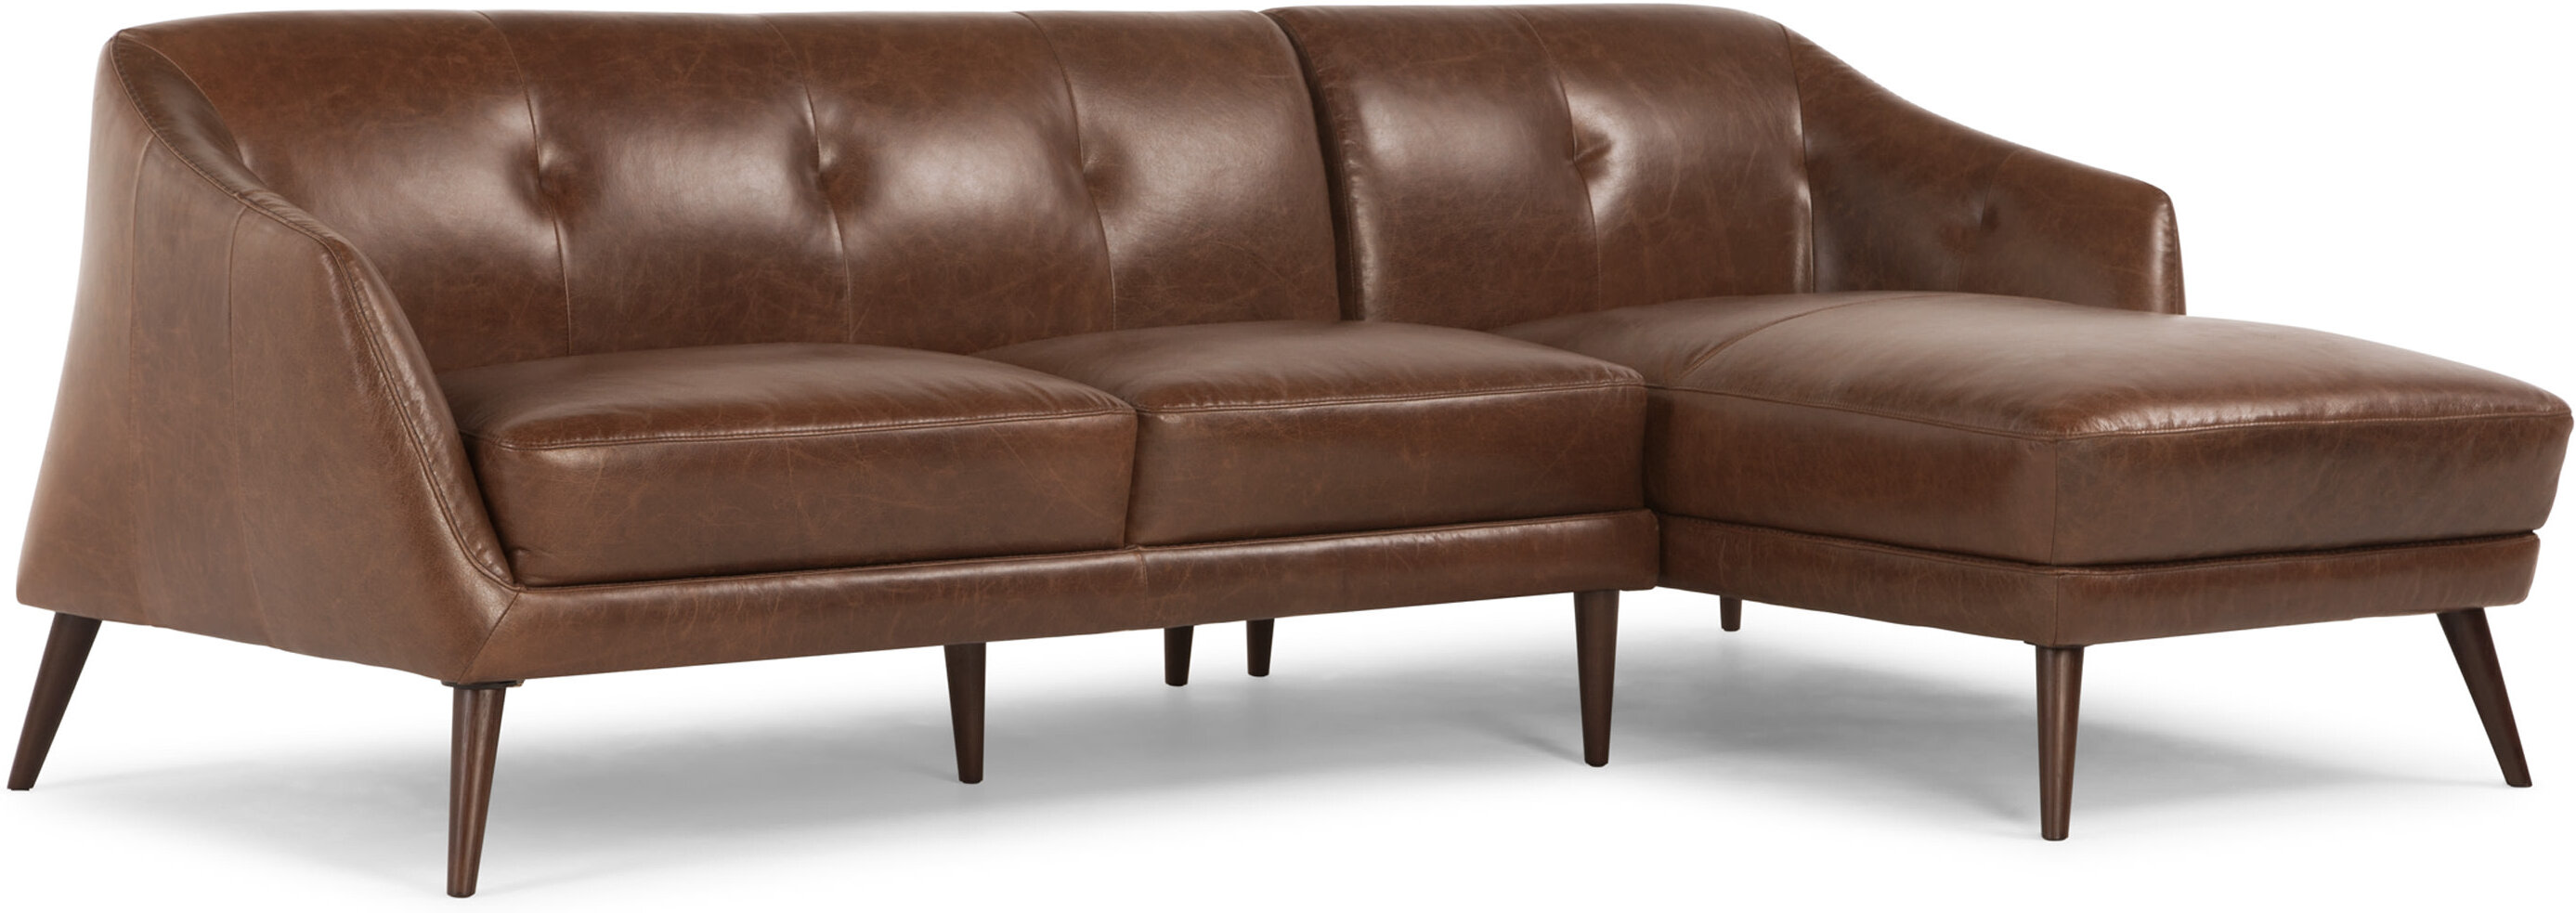 Nevada Right Hand Facing Corner Sofa Antique Cognac Leather